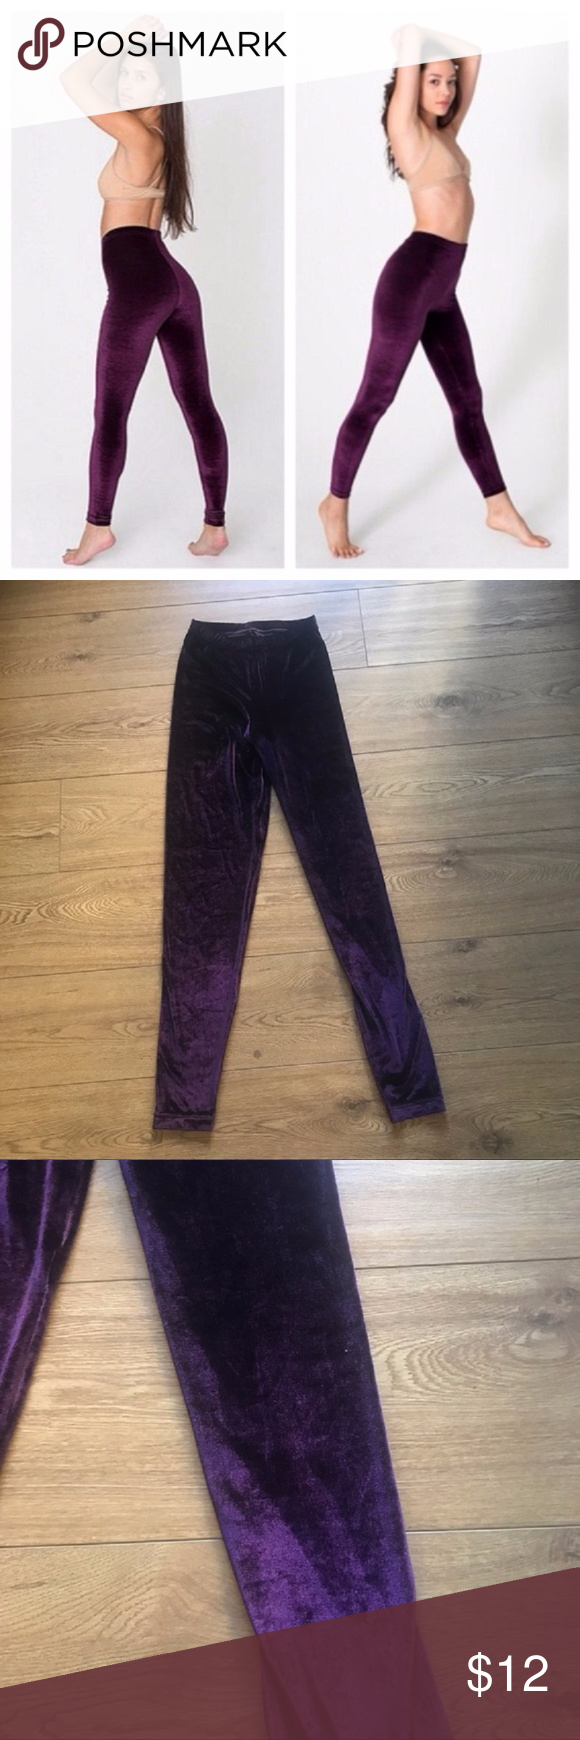 "American Apparel Purple Velvet Leggings - L Gorgeous pair of American Apparel purple velvet leggings. Inseam 29.5"", Rise 11.5"". Gorgeous for this time of year and perfectly trendy this season. American Apparel Pants Leggings"